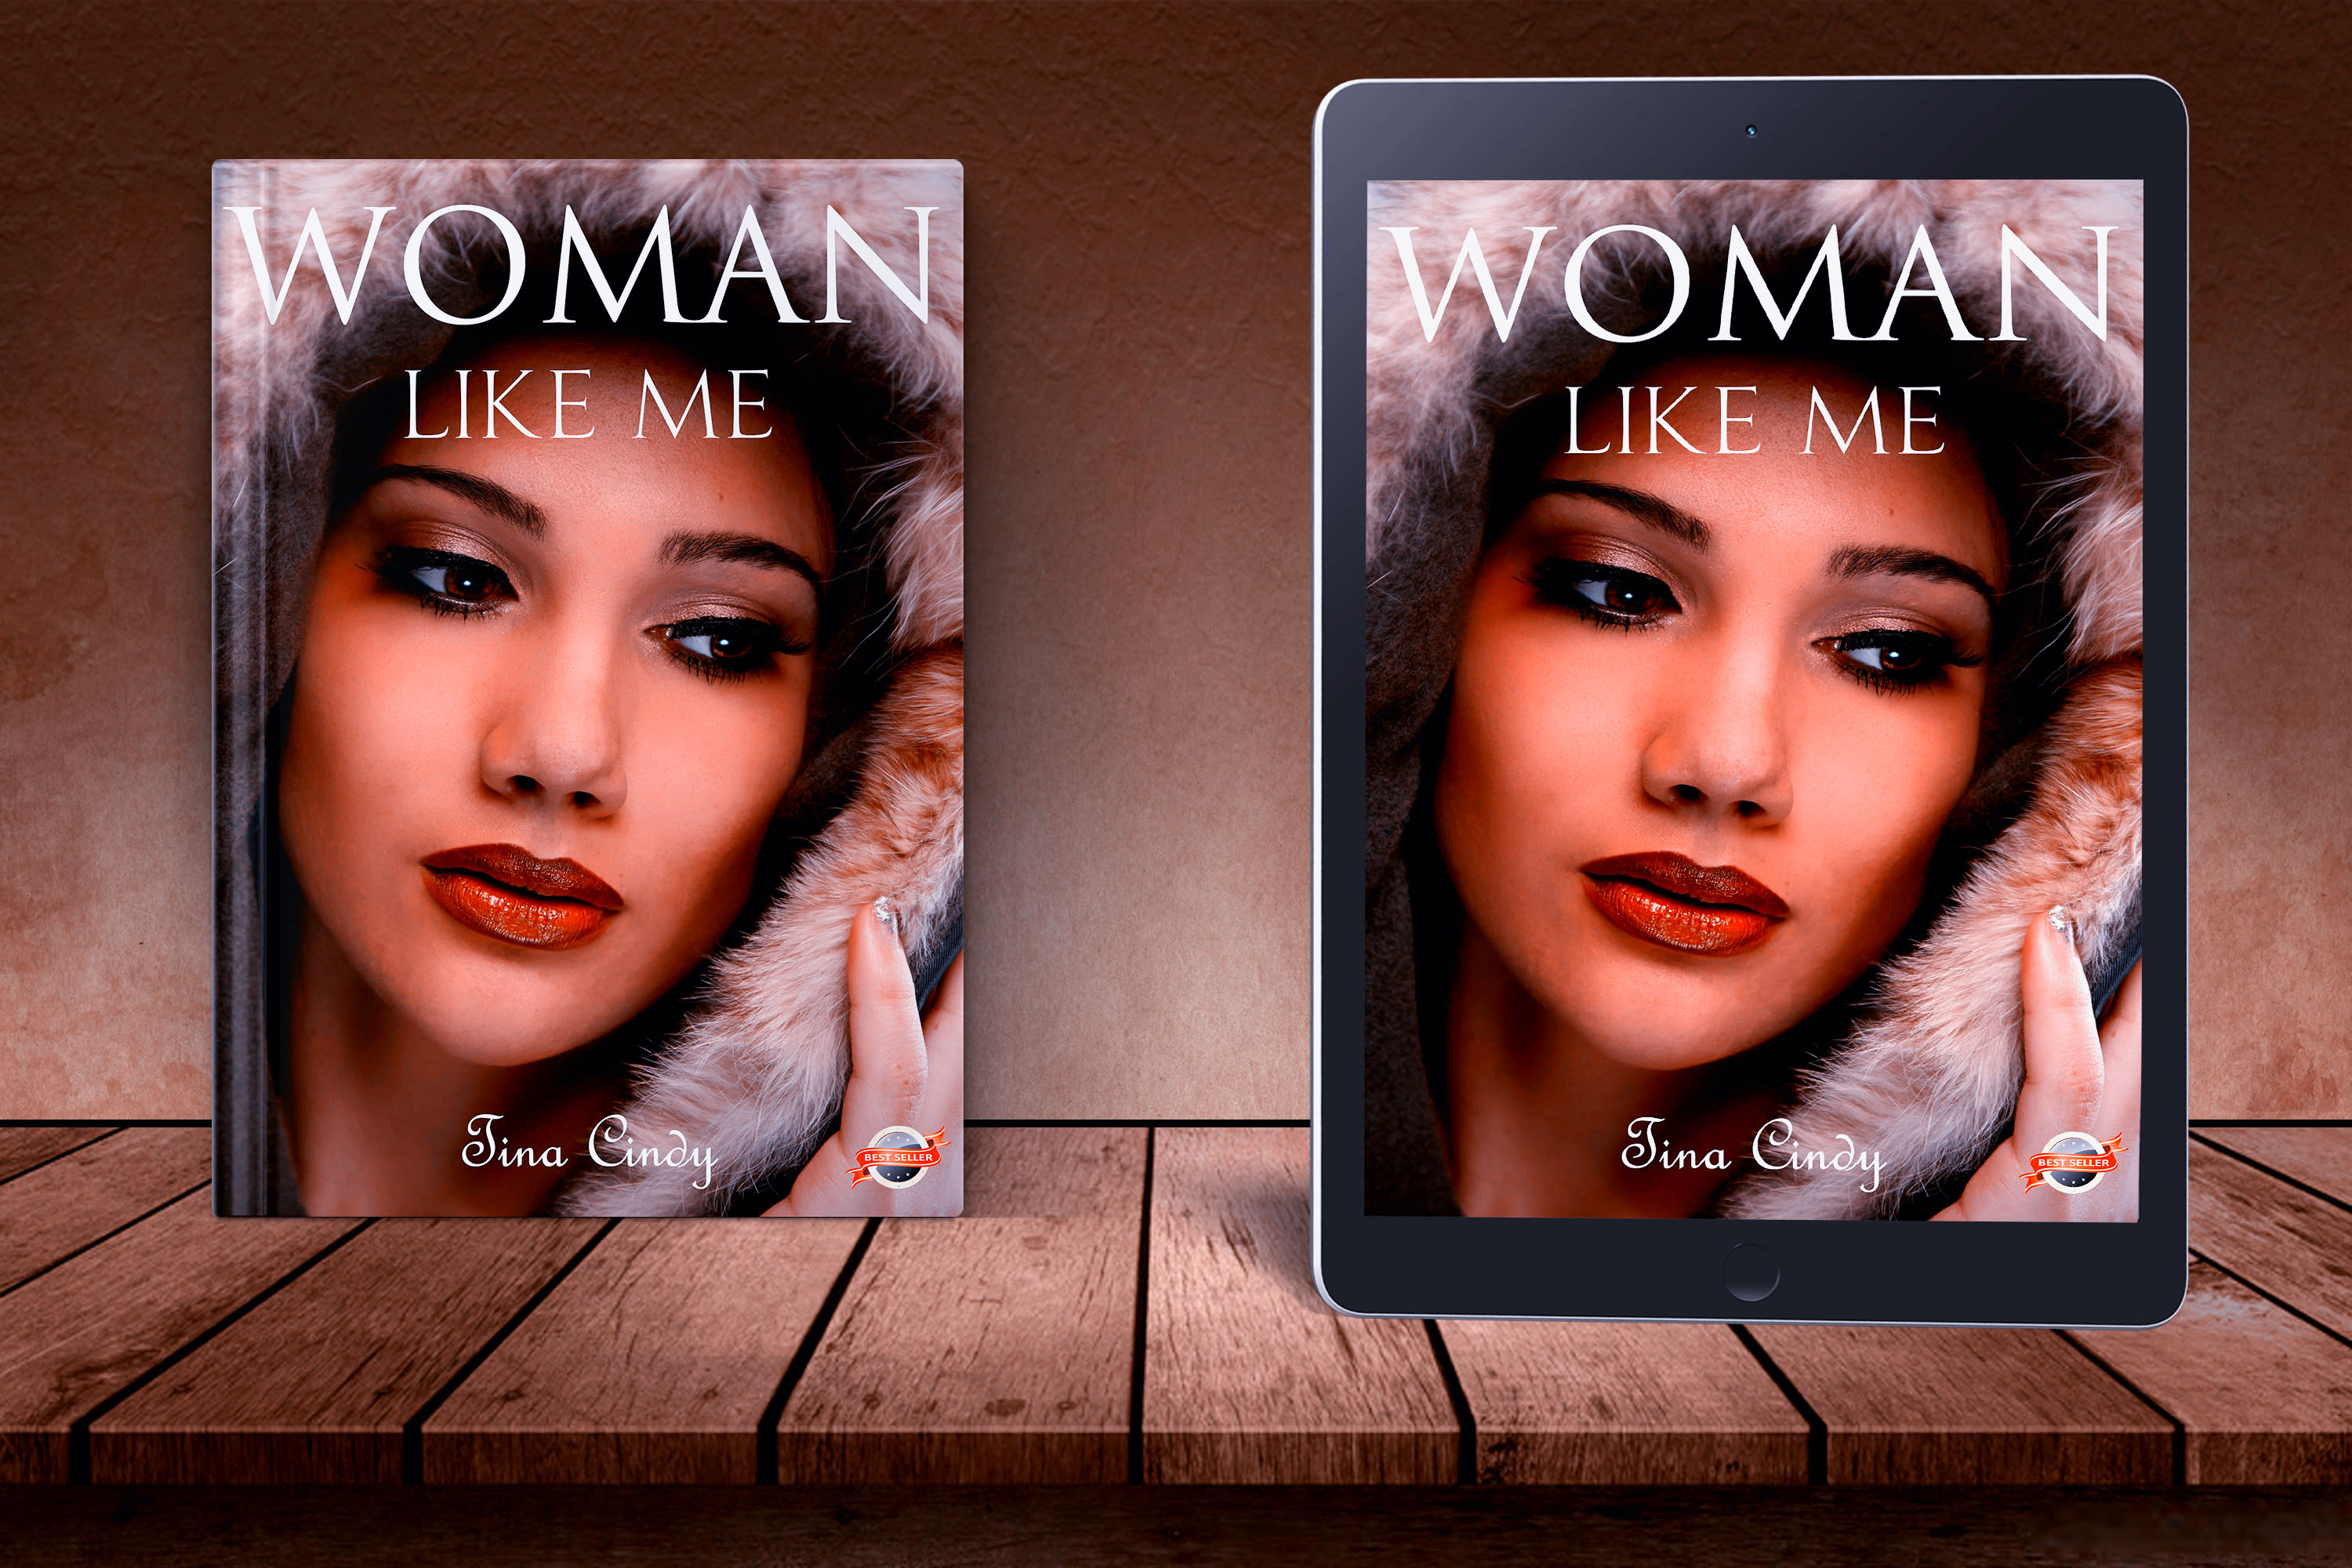 I will design professional book covers